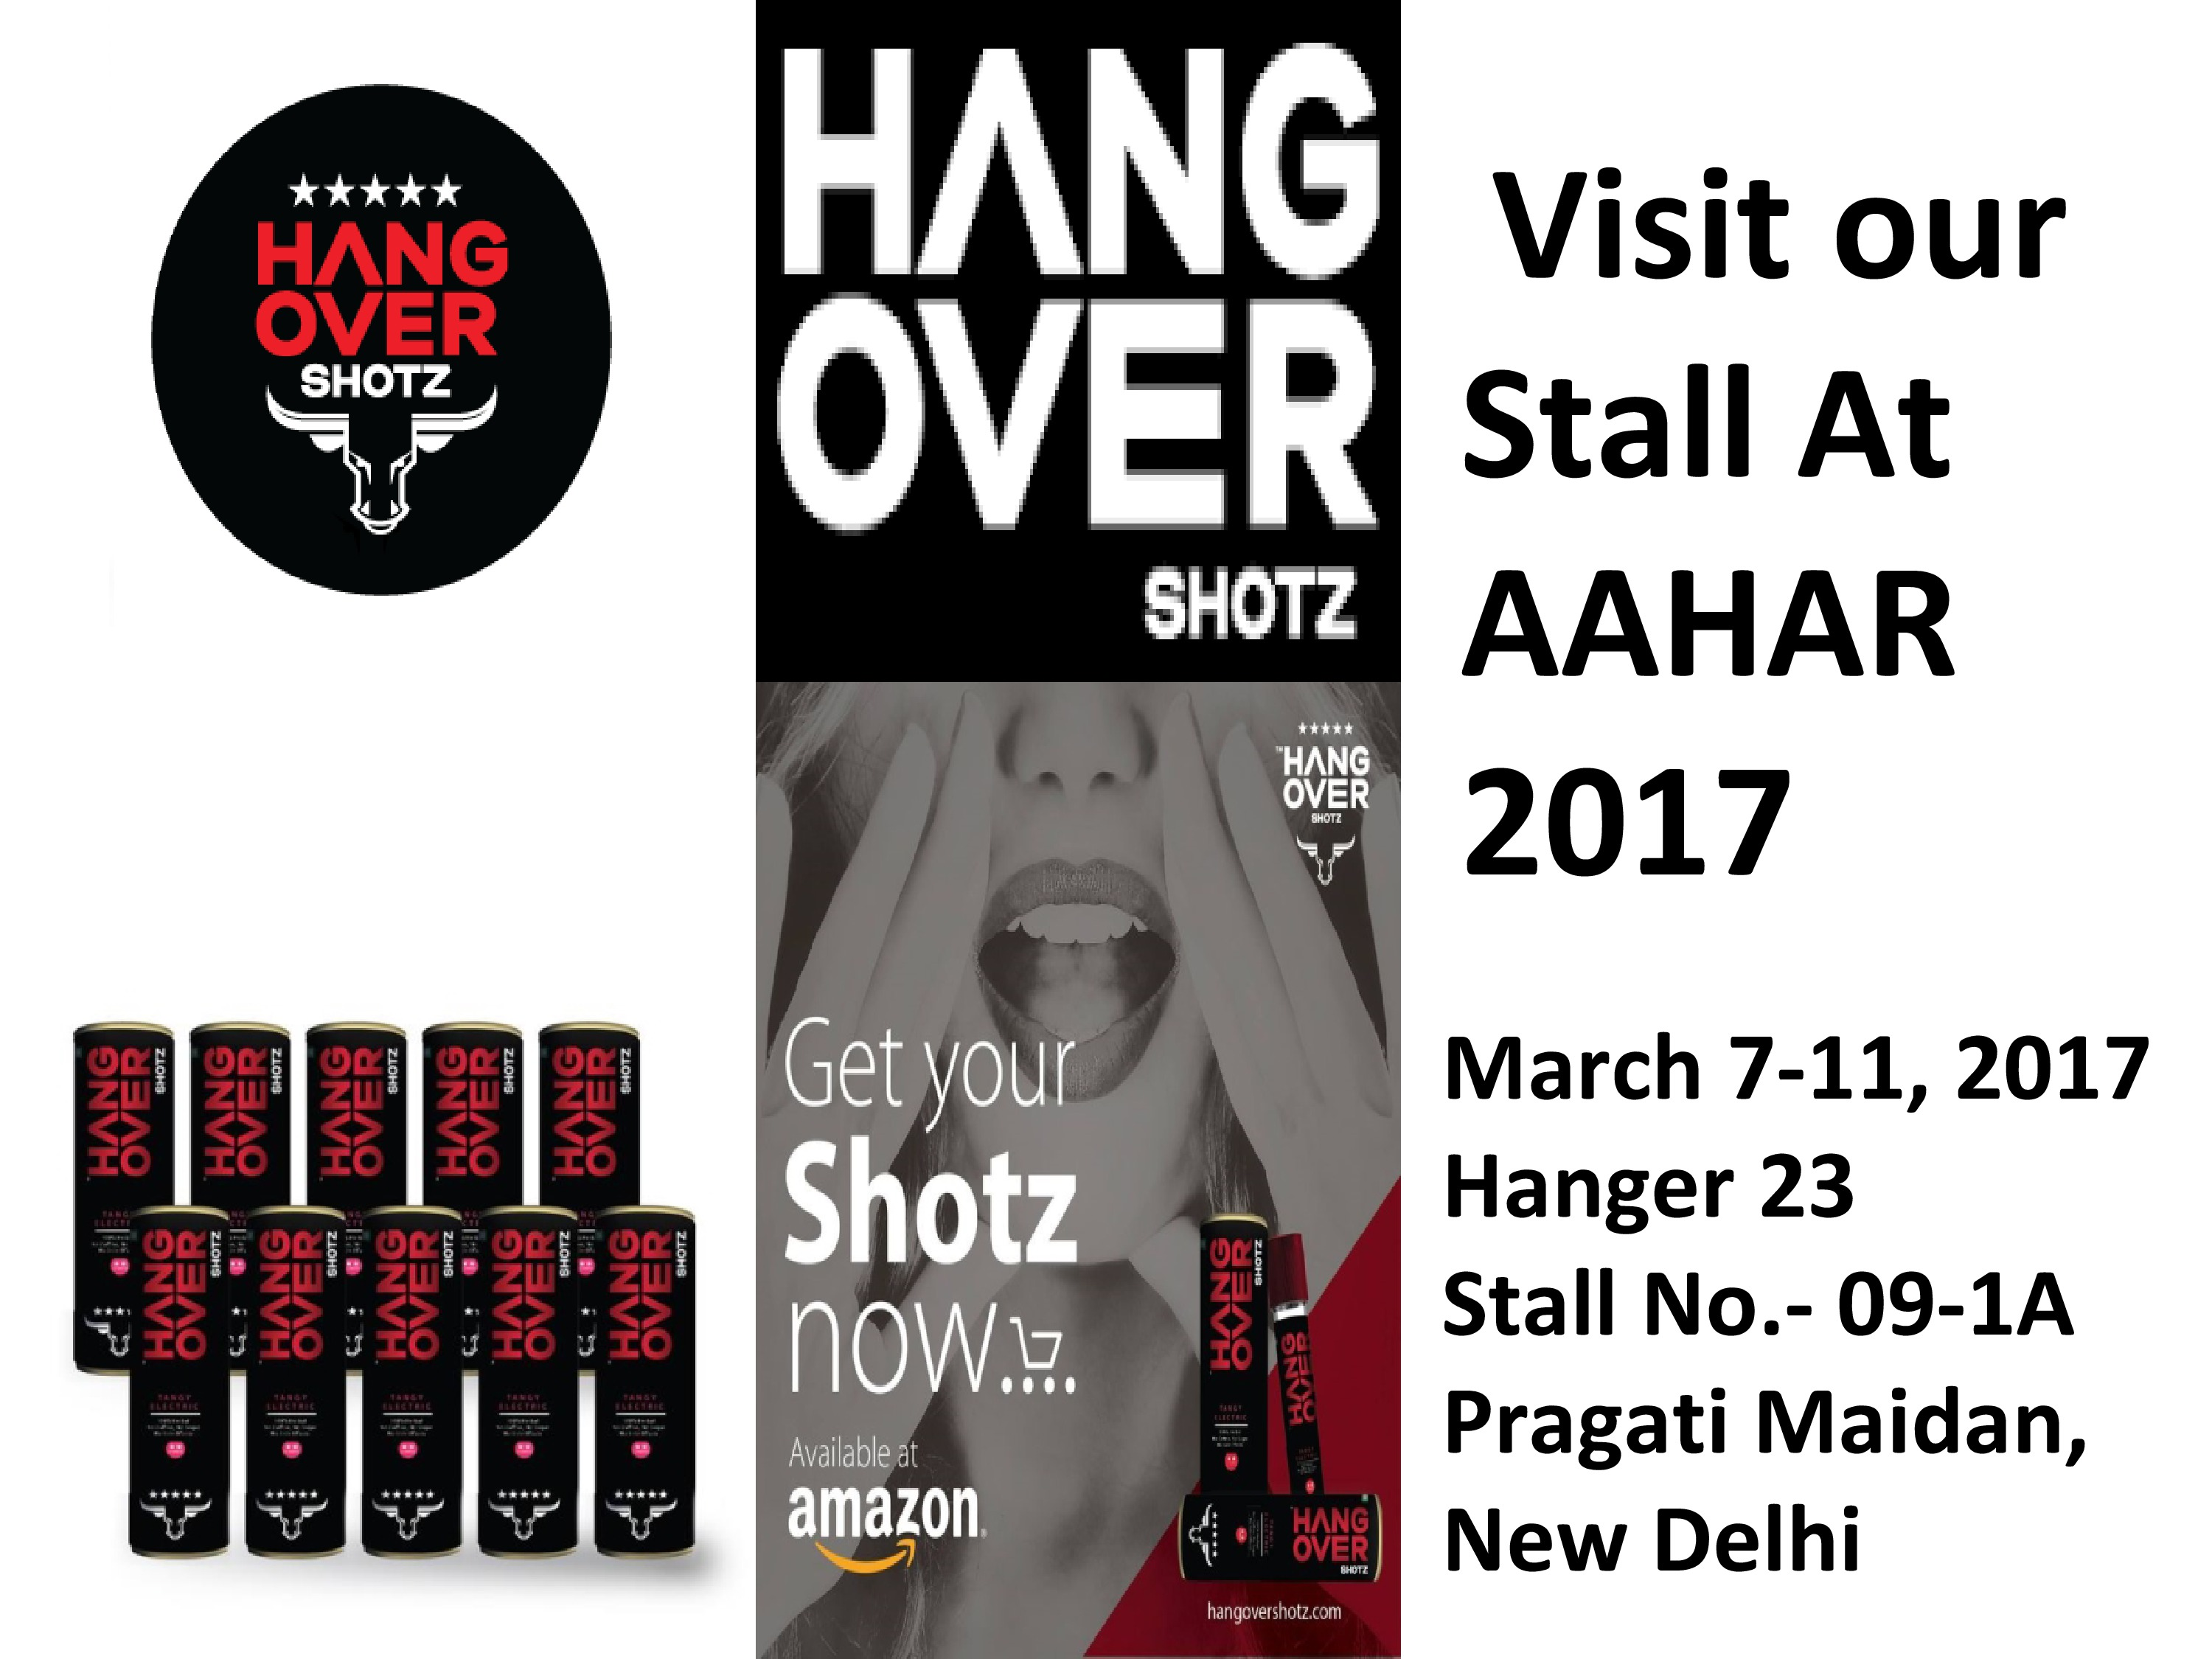 AAHAR - International Food & Hospitality Fair